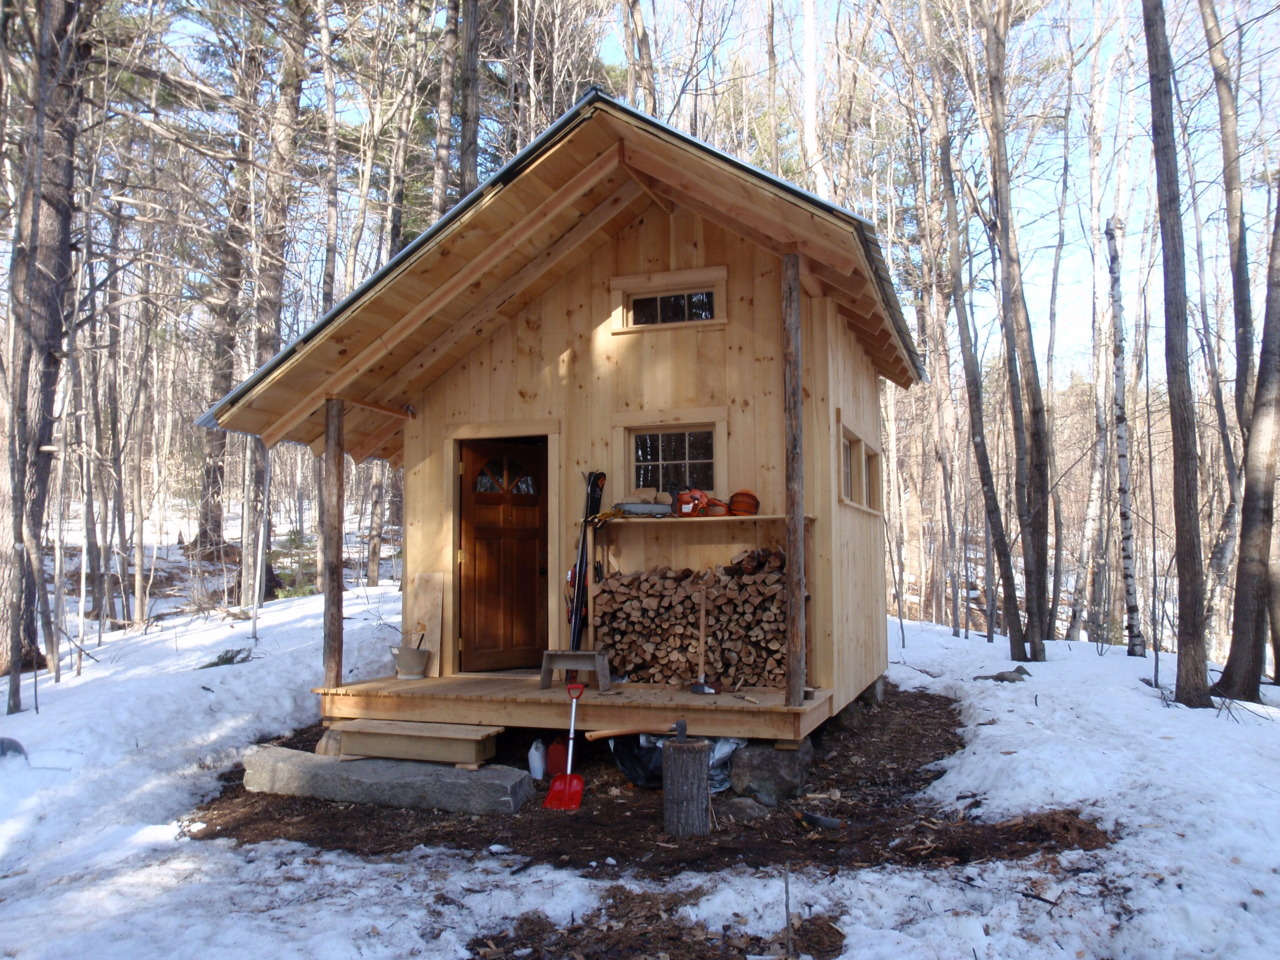 Cabin Fever: 50 Quiet And Peaceful Cabin Designs